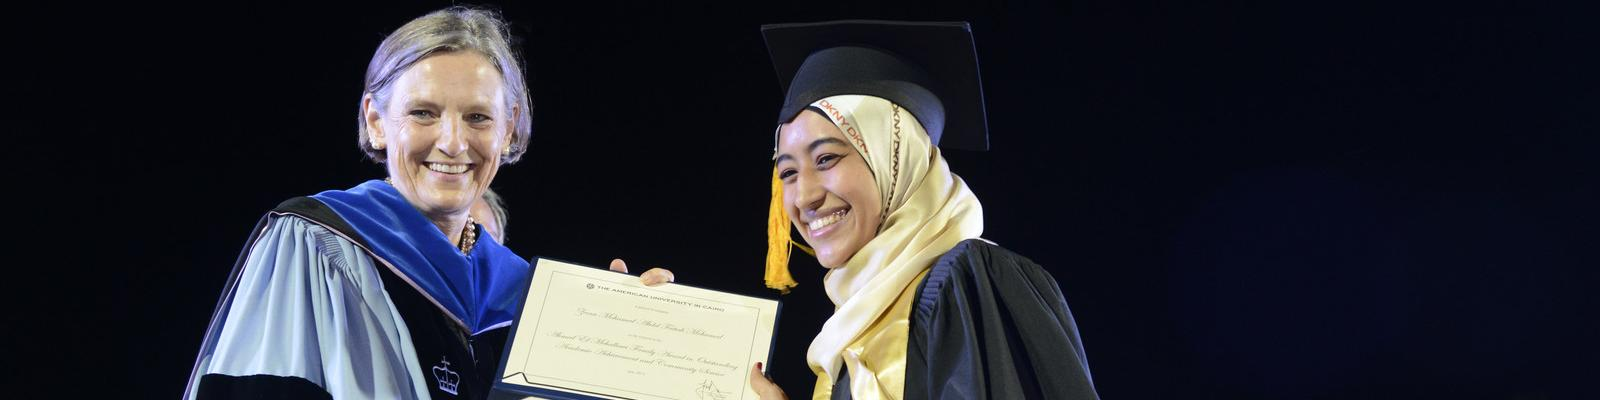 student receiving an award during a ceremony